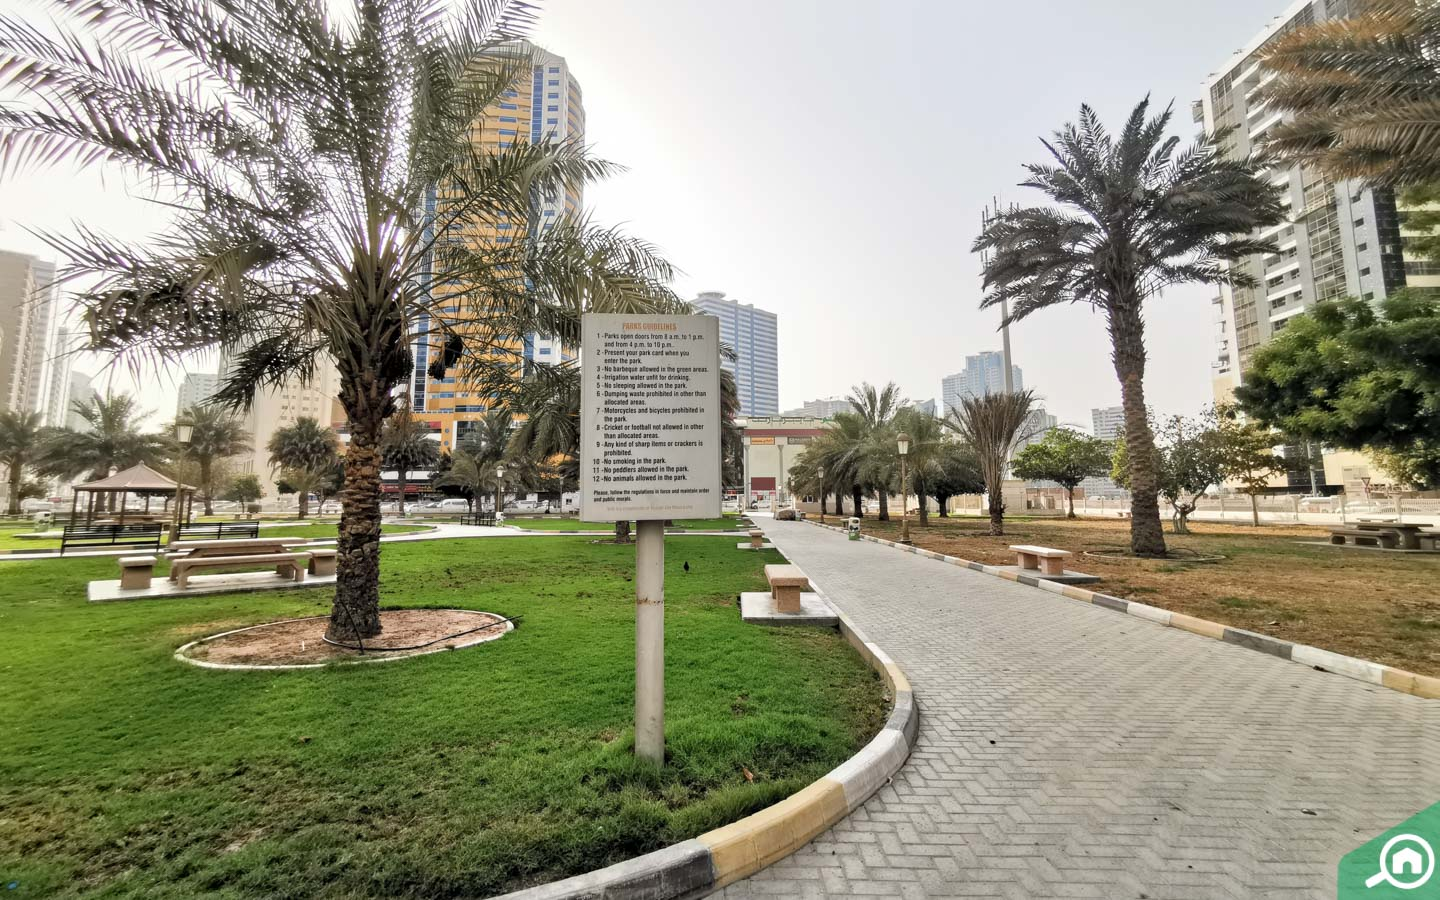 Information board in Al Nahda Park with rules and regulations